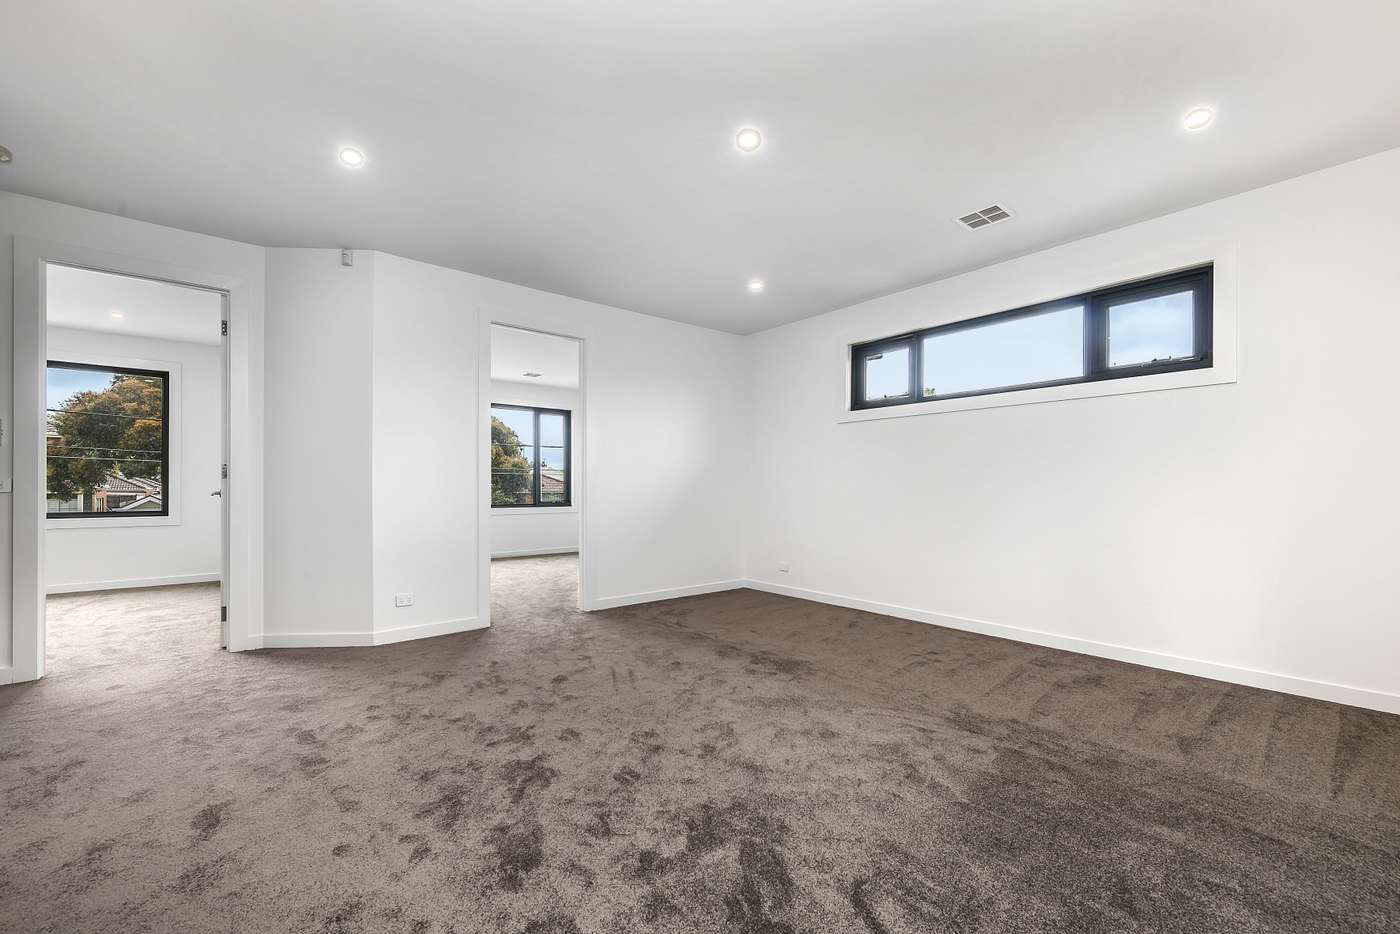 Sixth view of Homely house listing, 191 Ludstone St, Hampton VIC 3188